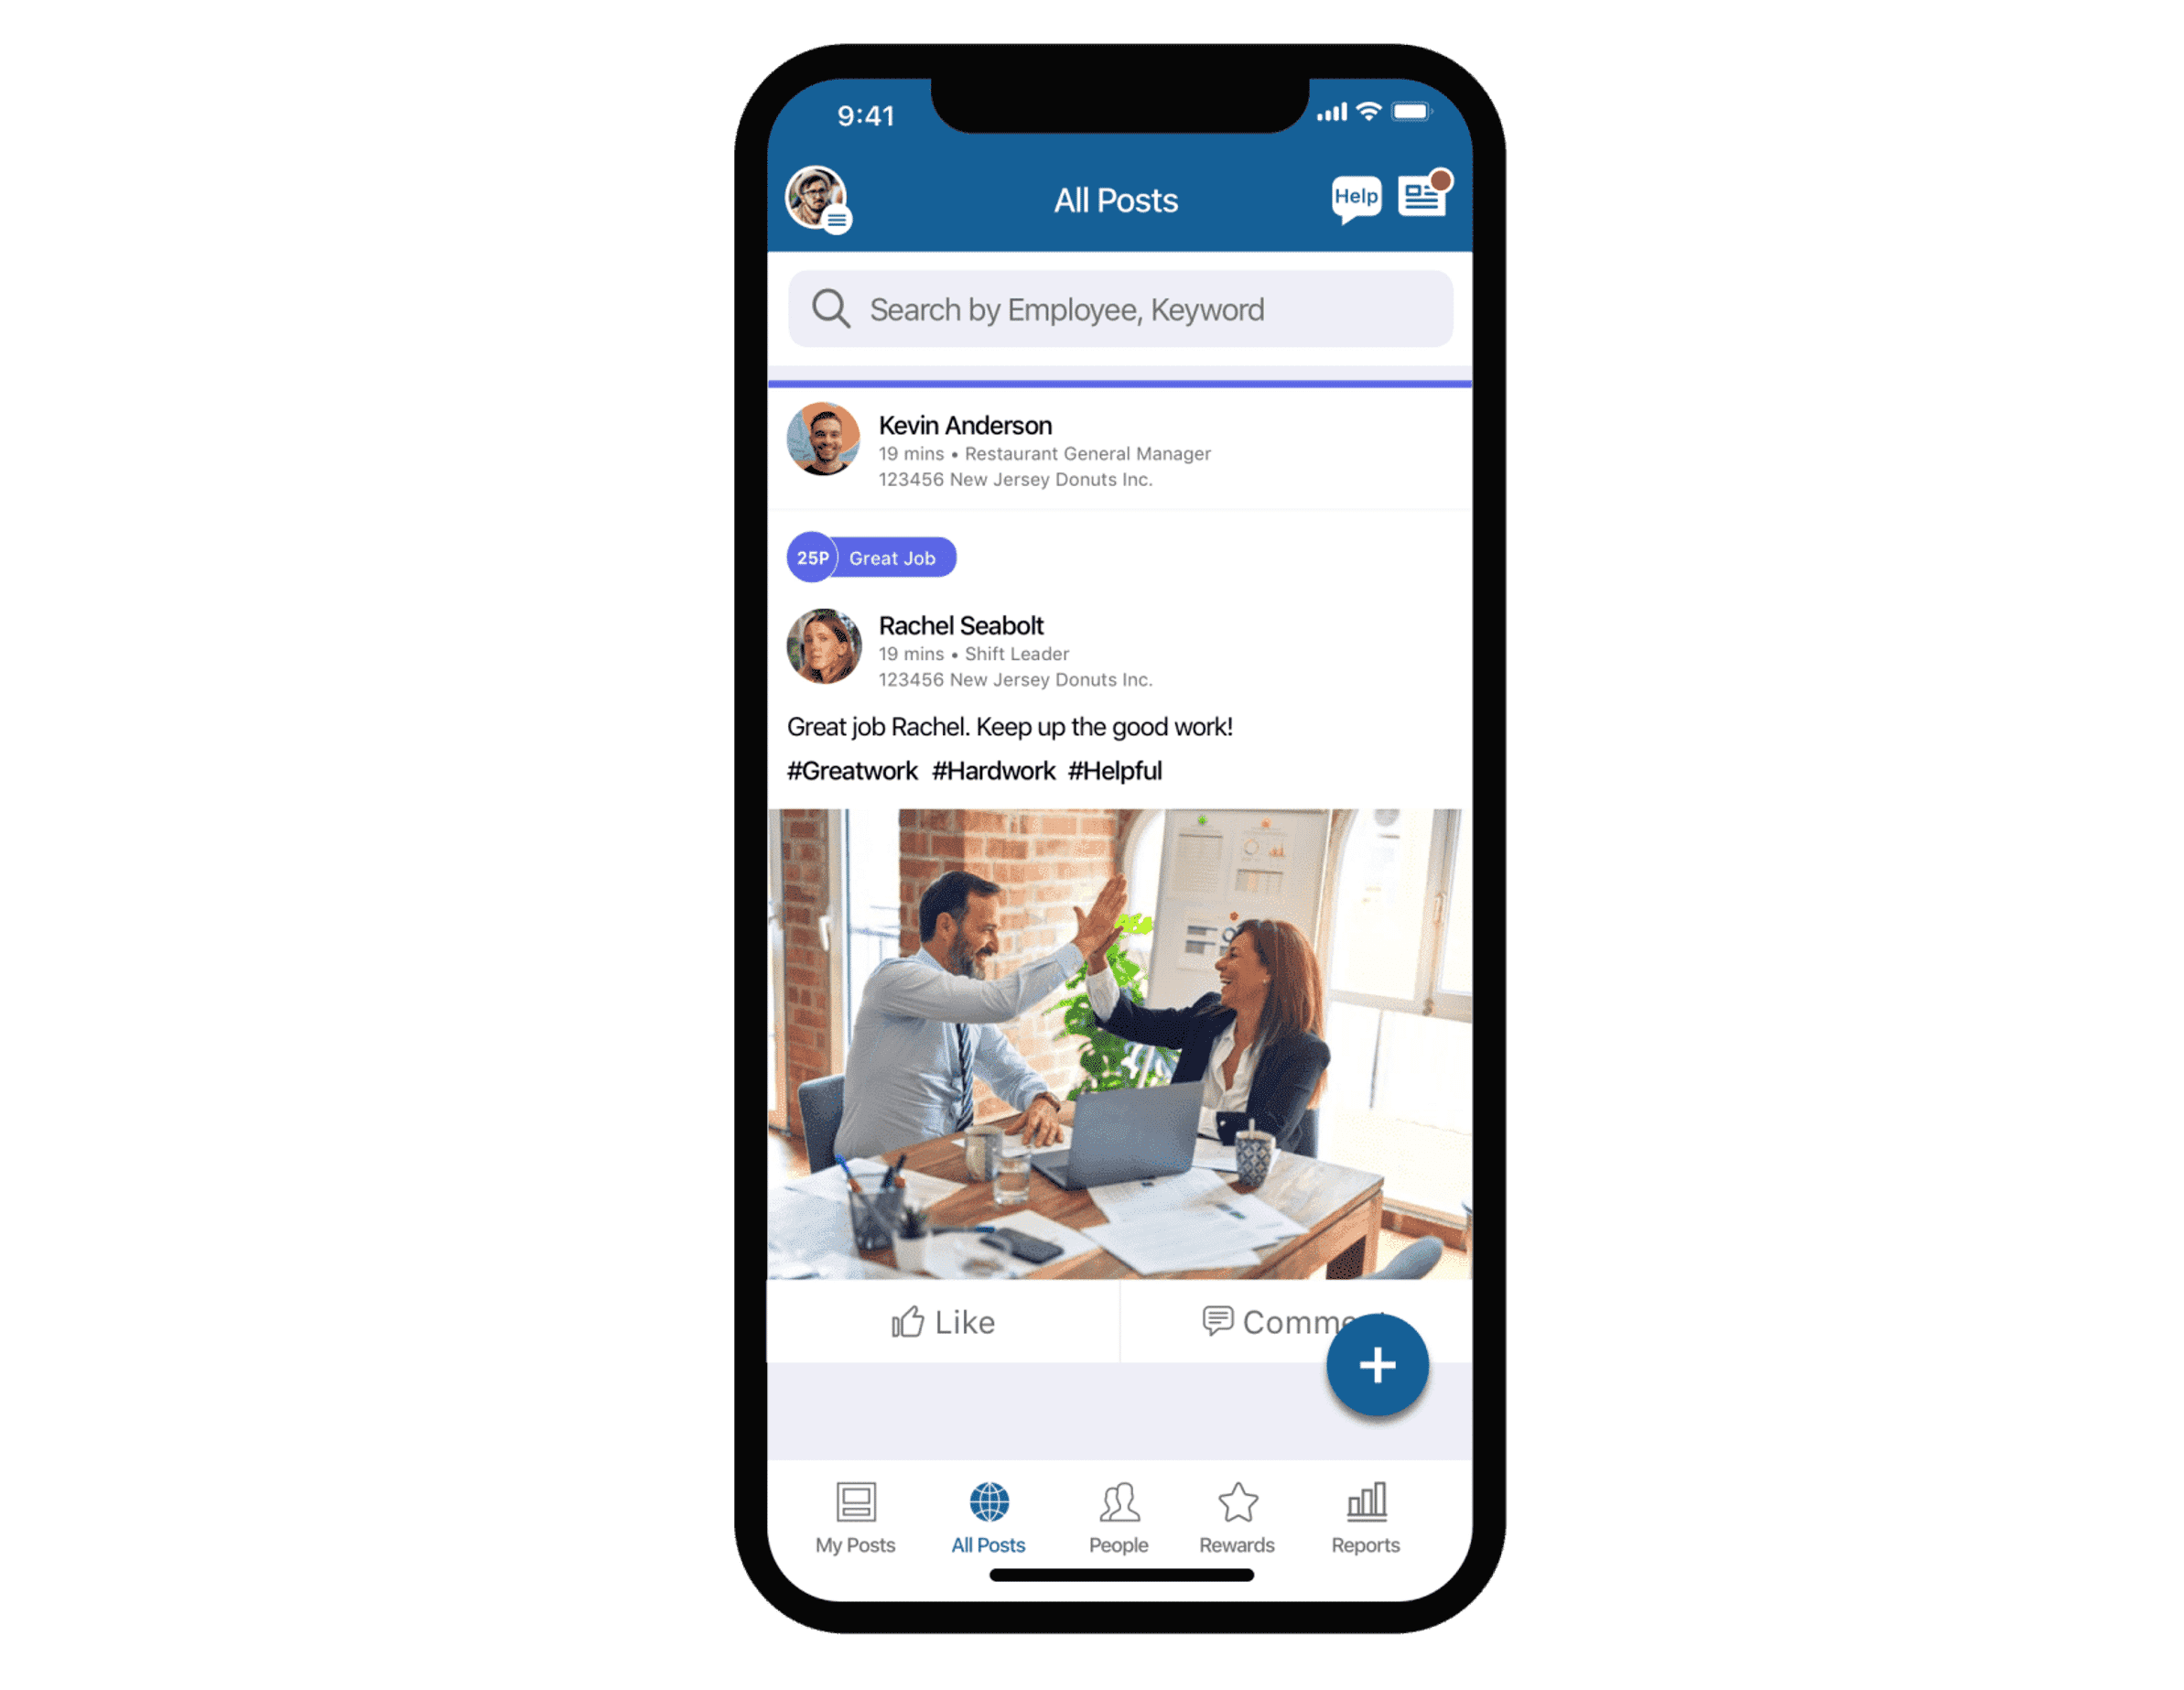 https://www.workpulse.com/wp-content/uploads/2021/08/Employee-Engagement-Dashboard.png